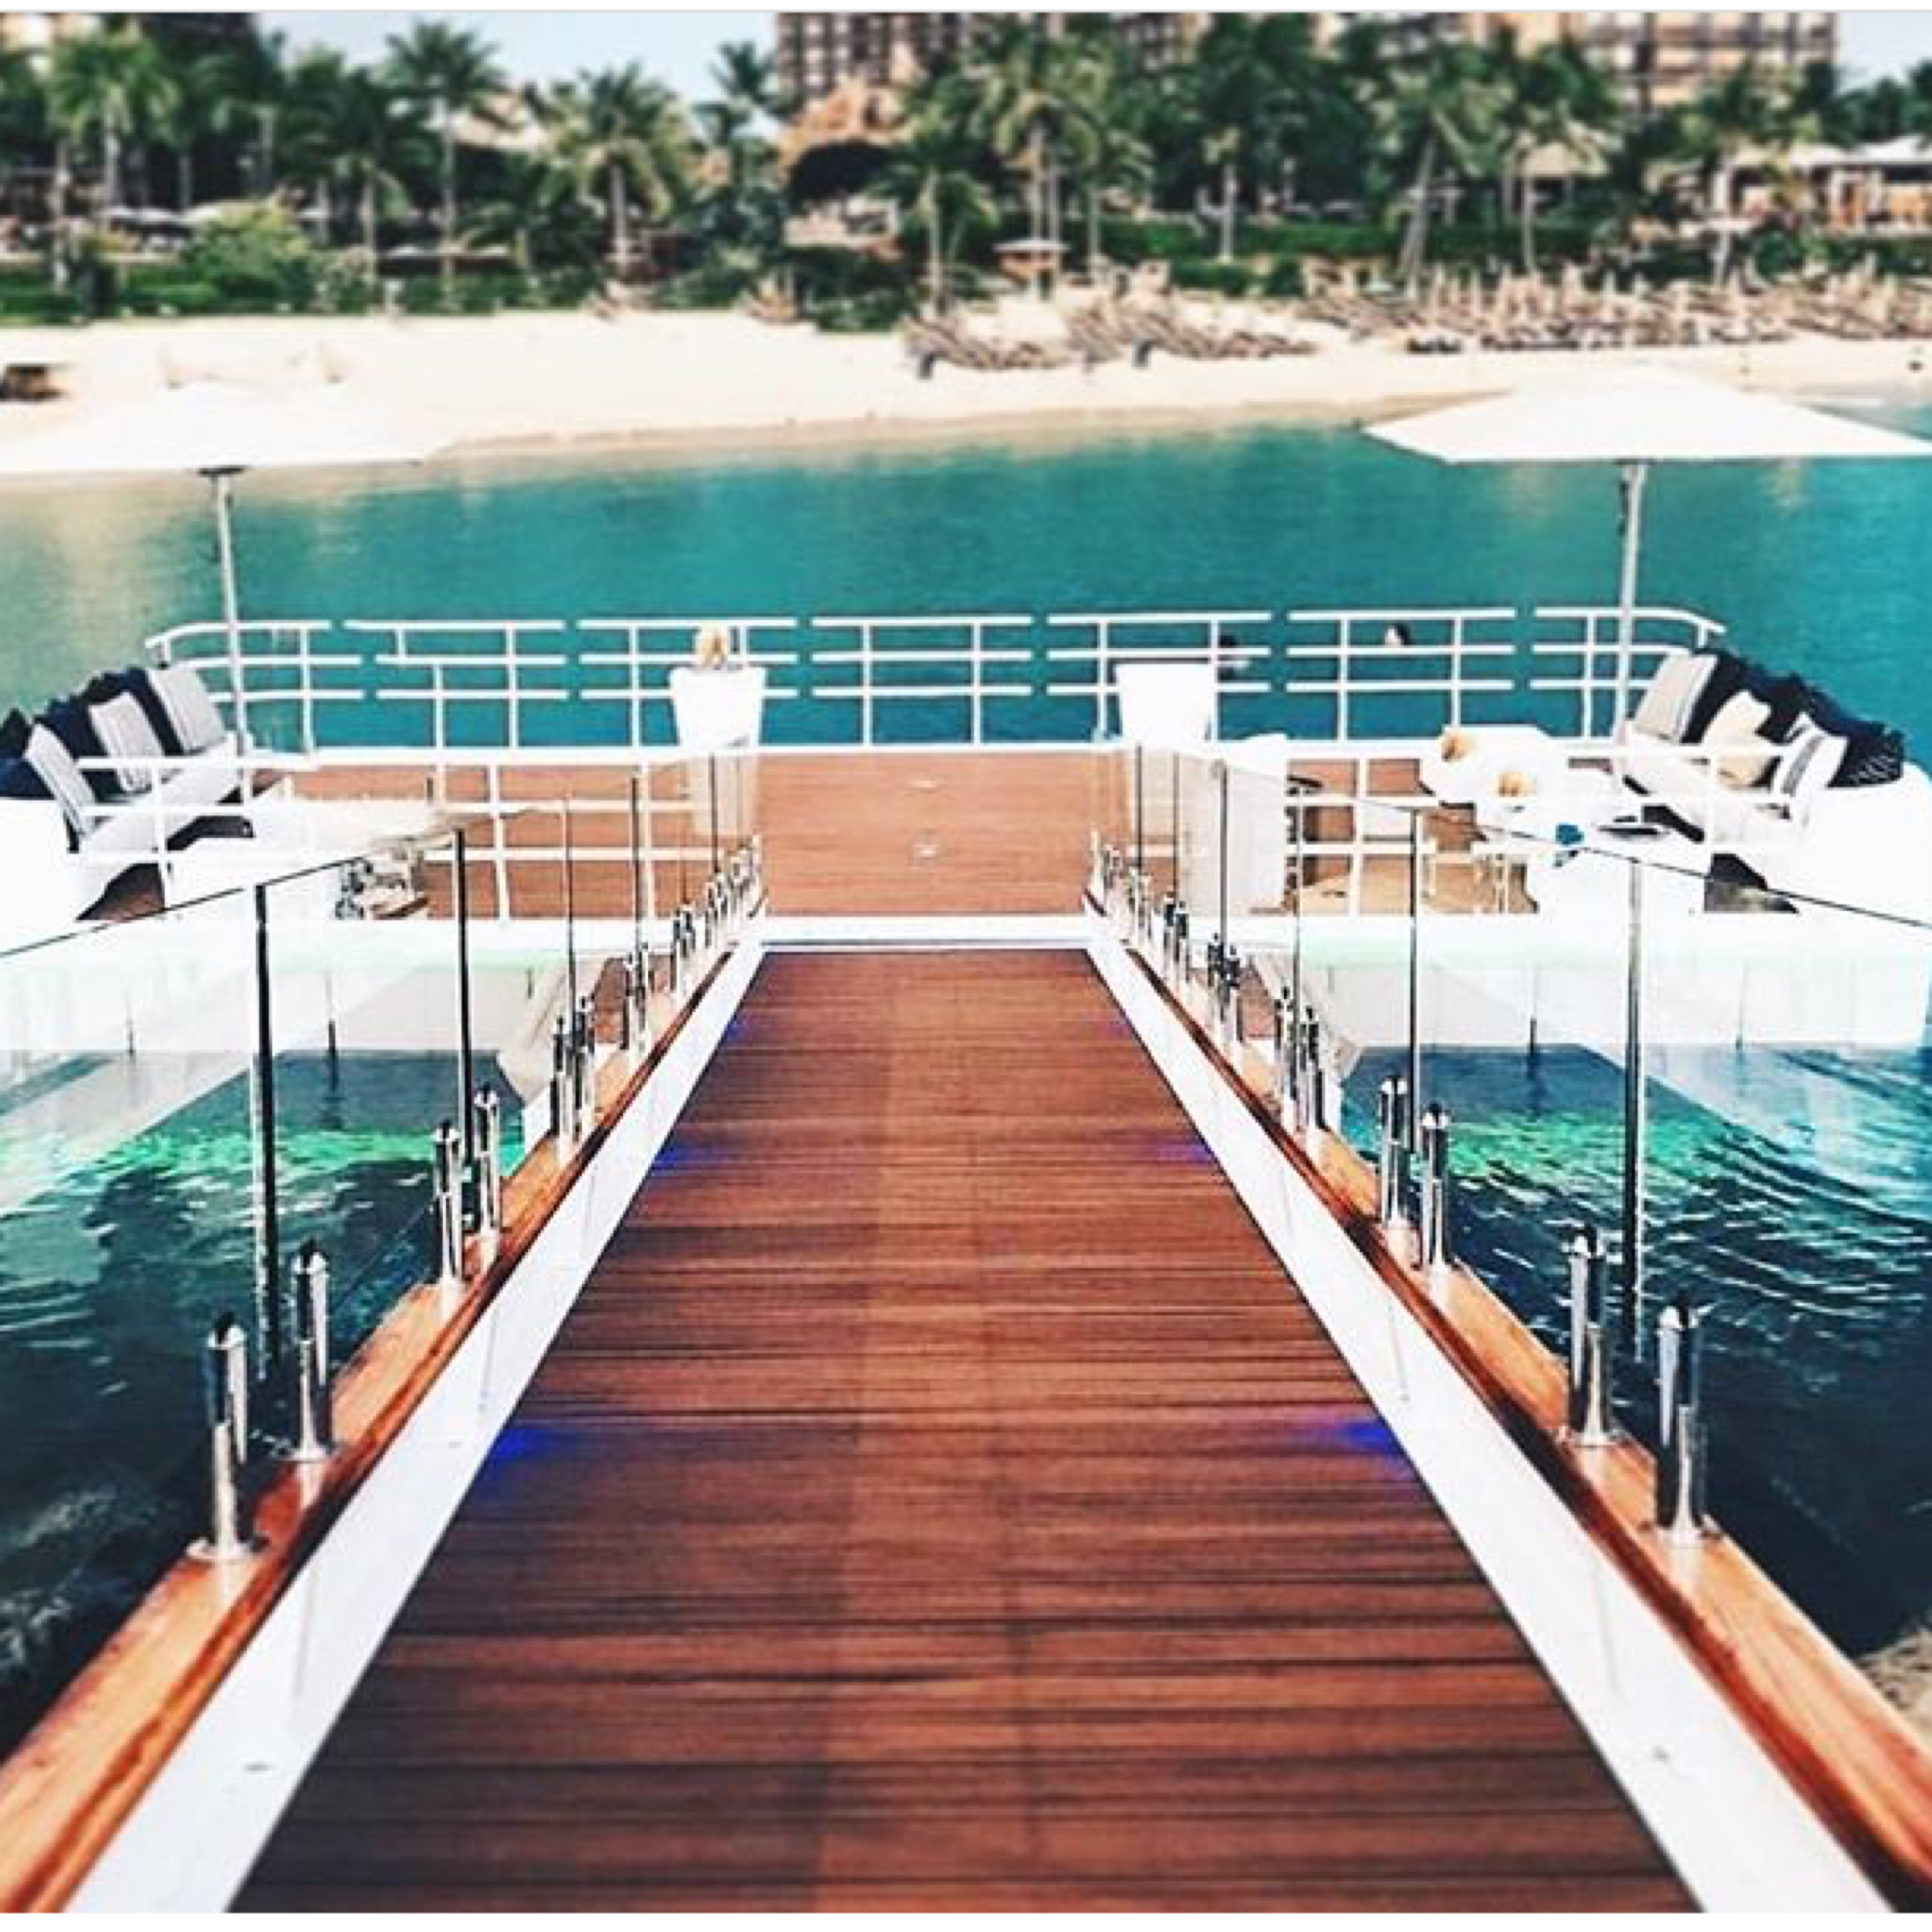 The floating platform is the perfect sunset ceremony location.Photo @fsoahu